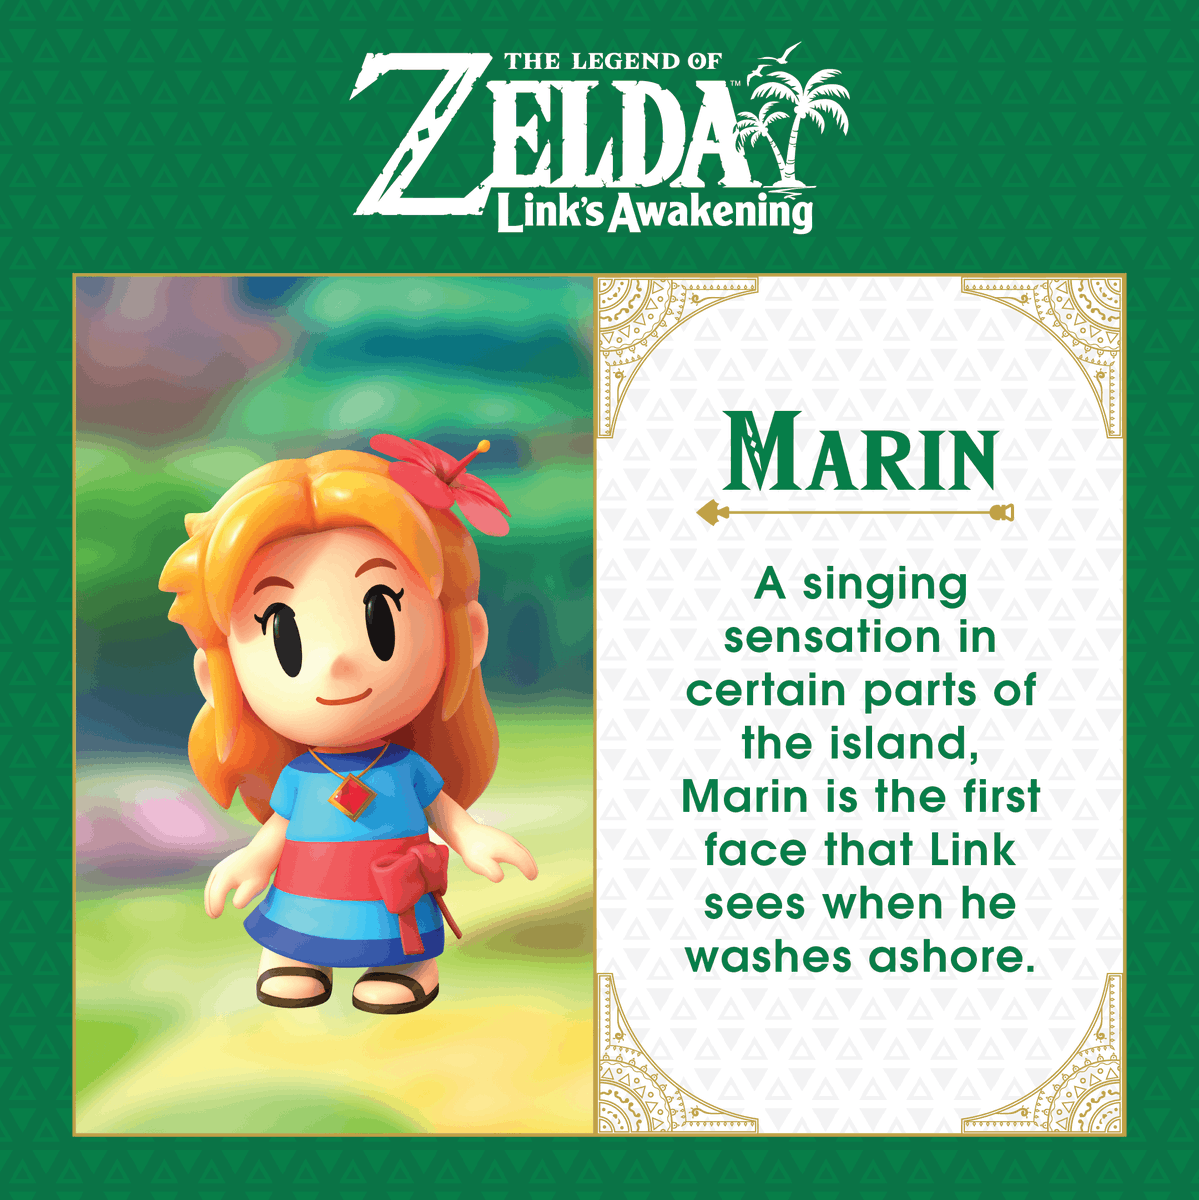 Nintendo Of America On Twitter In The Legend Of Zelda Link S Awakening Link S Quest To Awaken The Wind Fish Begins With A Little Help From The Musical Marin Learn More About The 3:30 pm · jun 3, 2020·twitter web app. nintendo of america on twitter in the